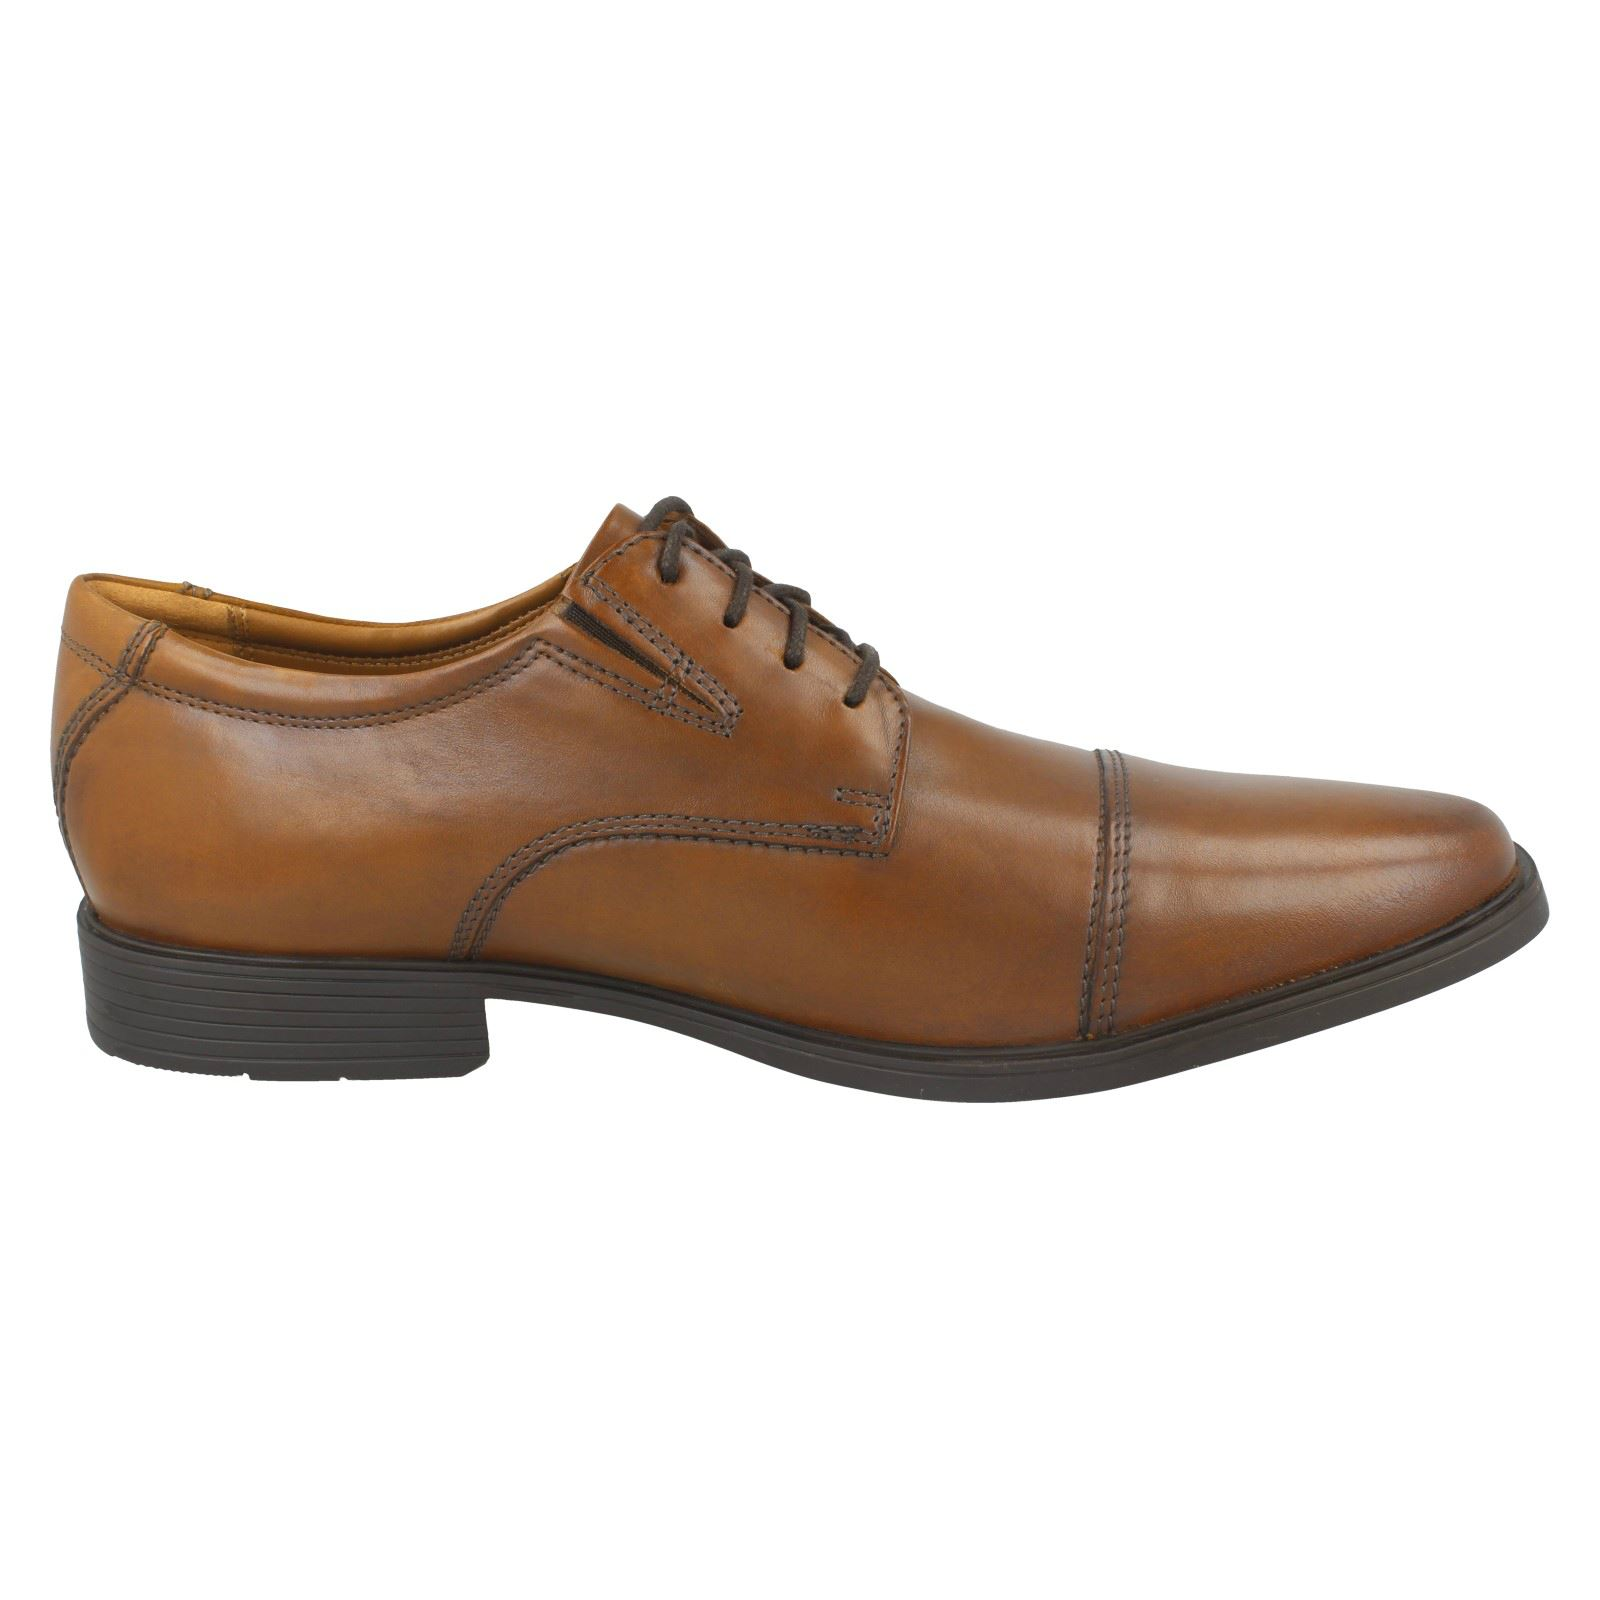 Mens-Clarks-Formal-Lace-Up-Shoes-Tilden-Cap thumbnail 24